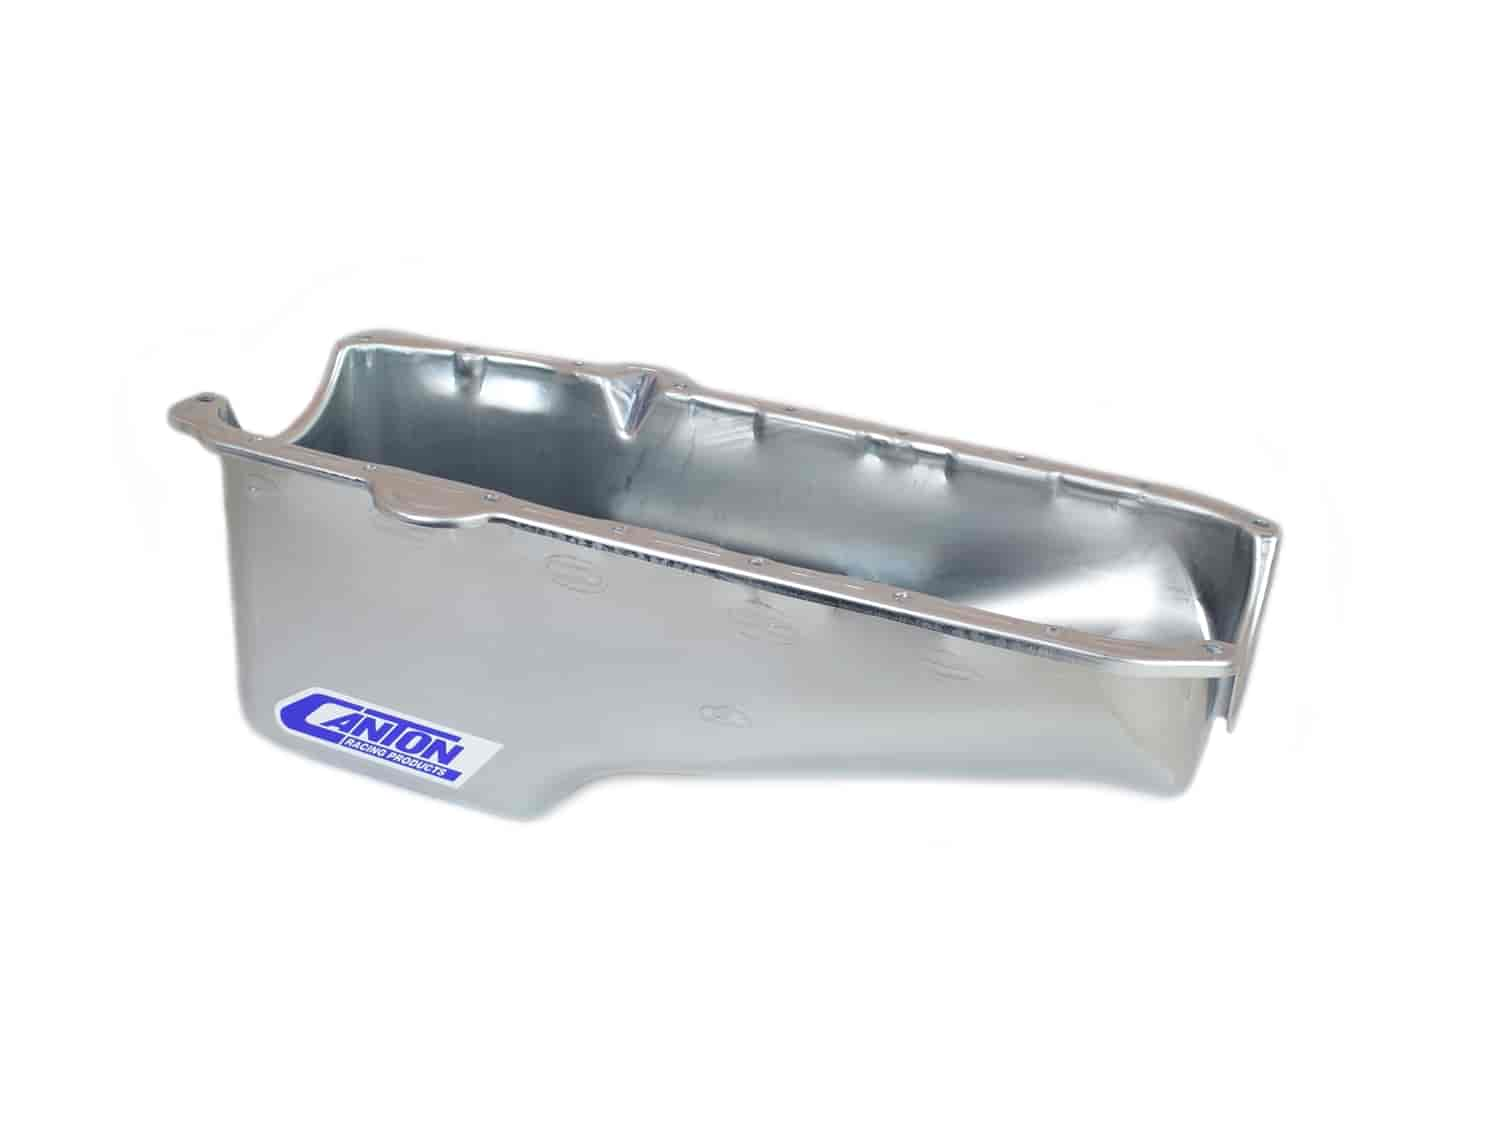 Canton Racing Products 15-010 - Canton Racing Stock Appearing / Stock Replacement Oil Pans